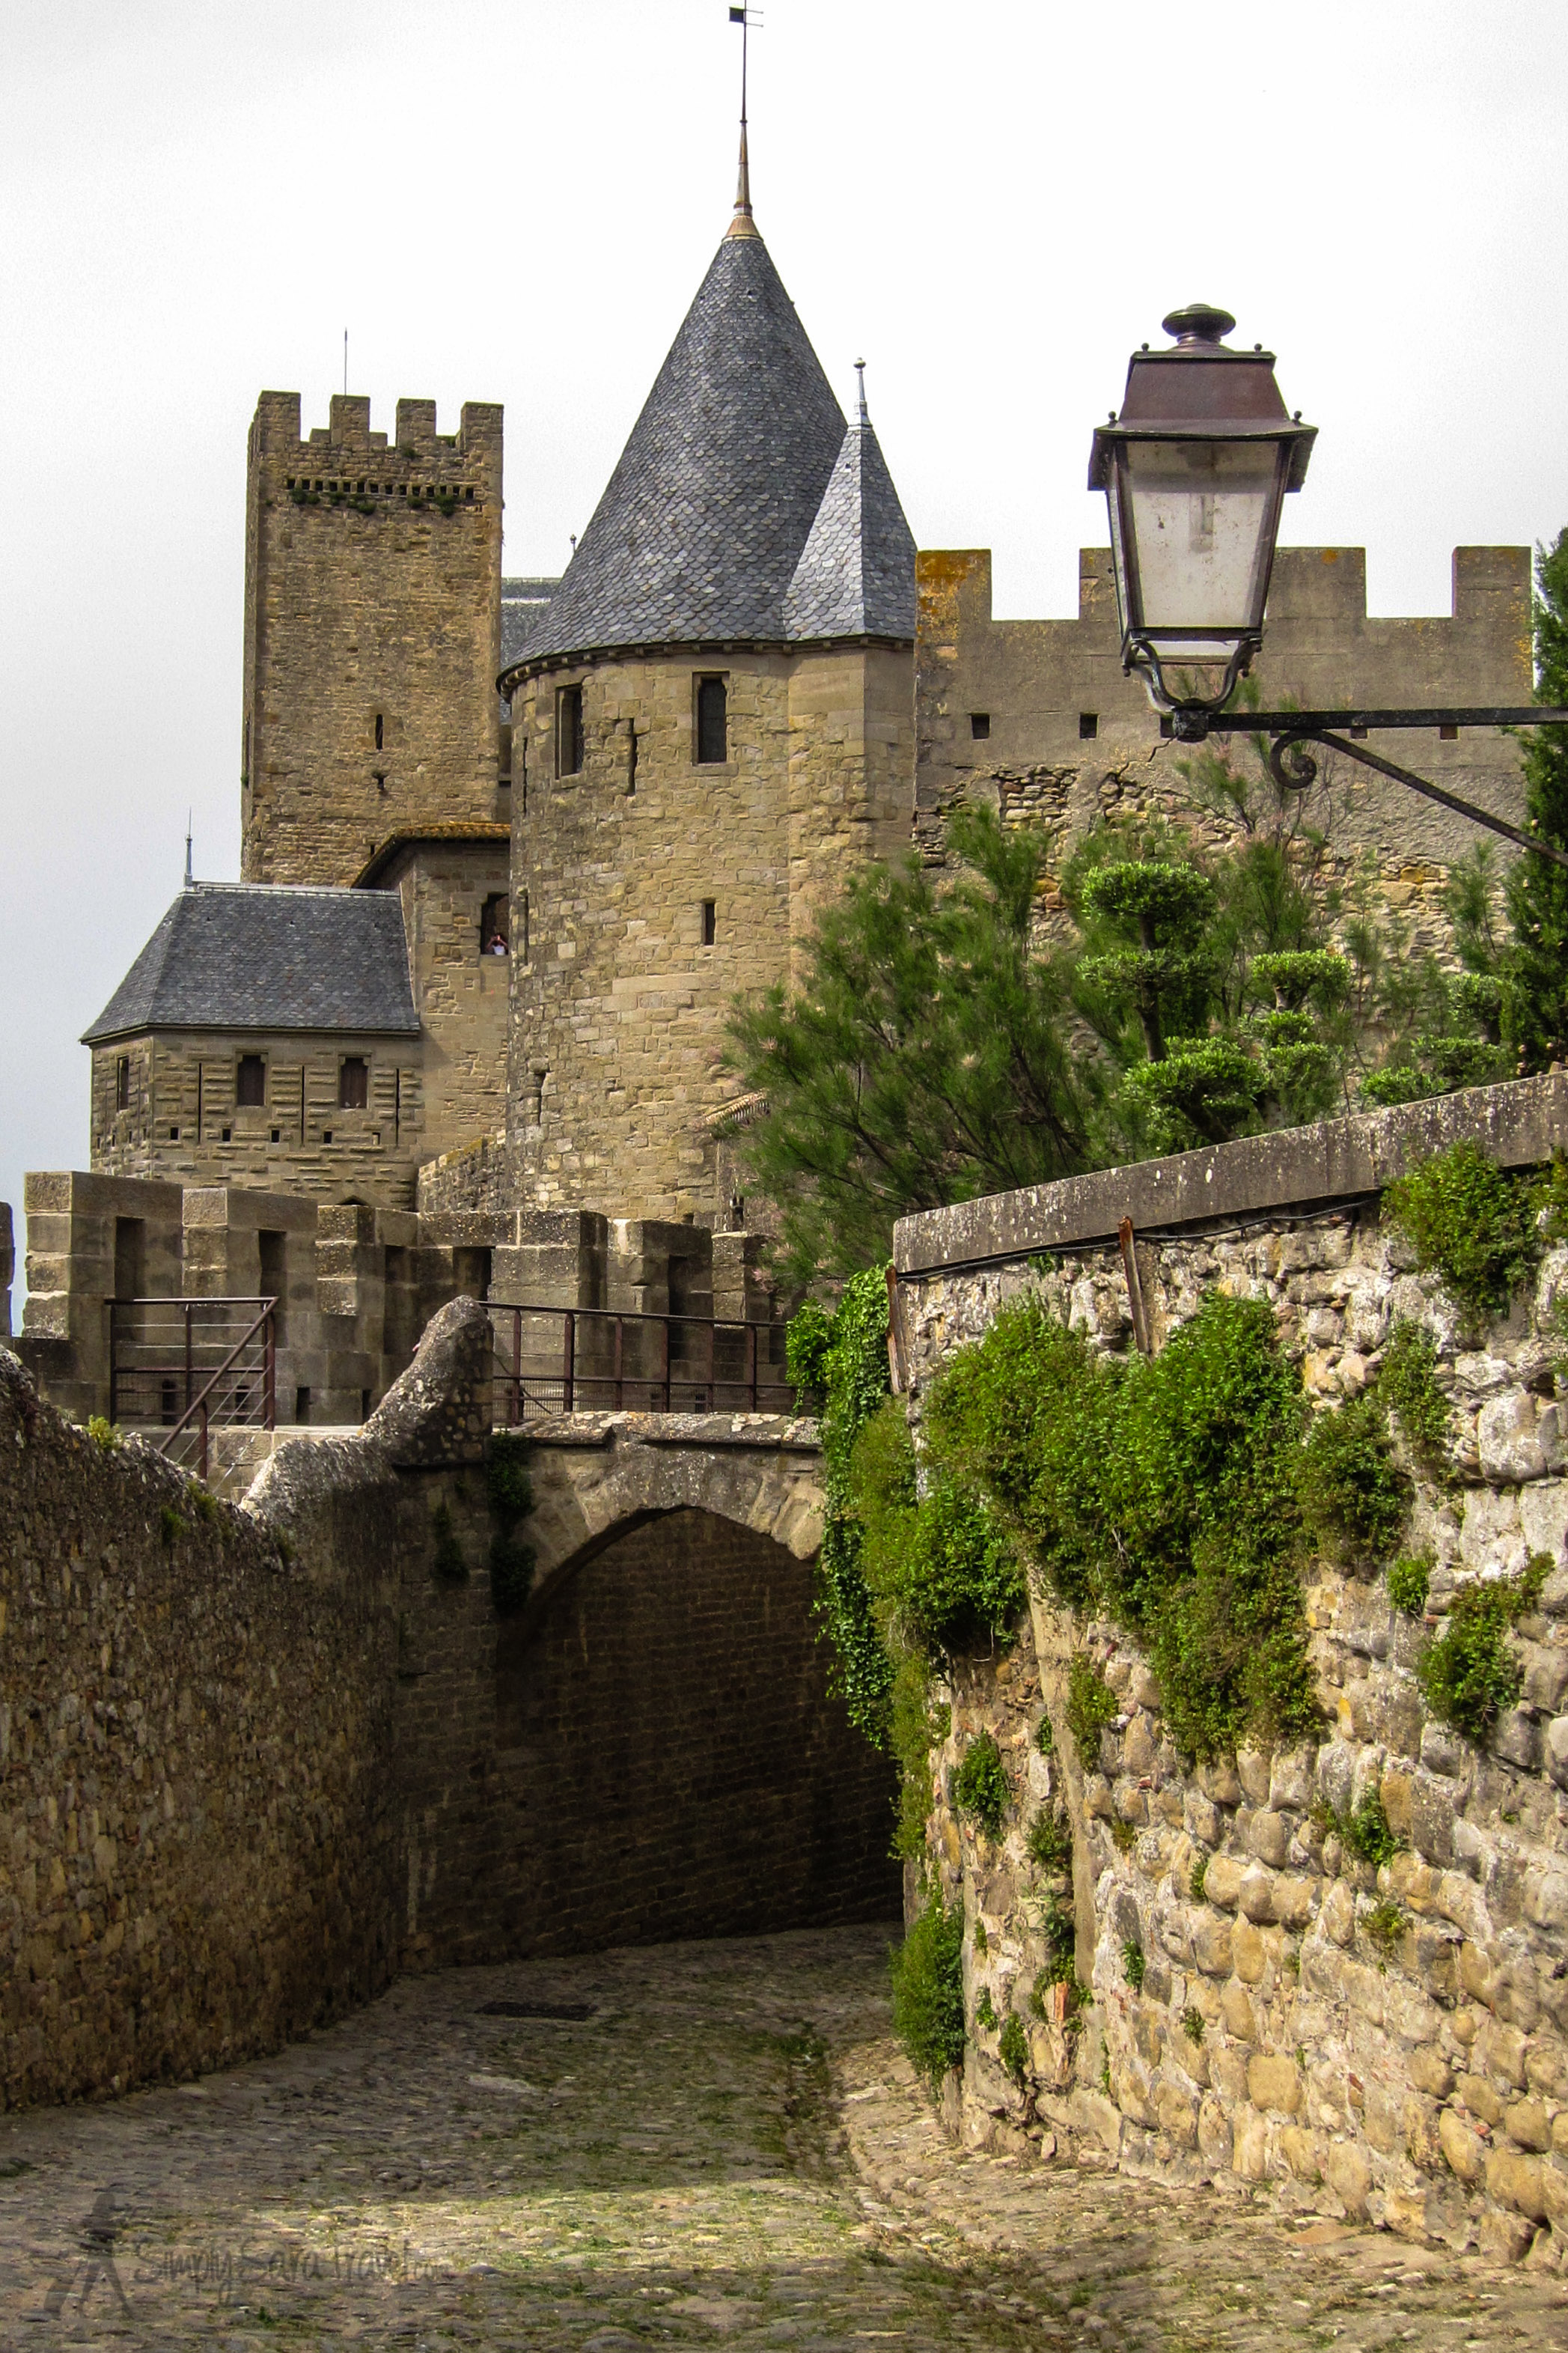 "Most notable of the fortresses visited has to be iconic Carcassonne. It's as if those medieval builders subscribed to the good 'ole American ""supersize me"" mentality, and its UNESCO status and grand stature make it one of France's top tourist attractions."